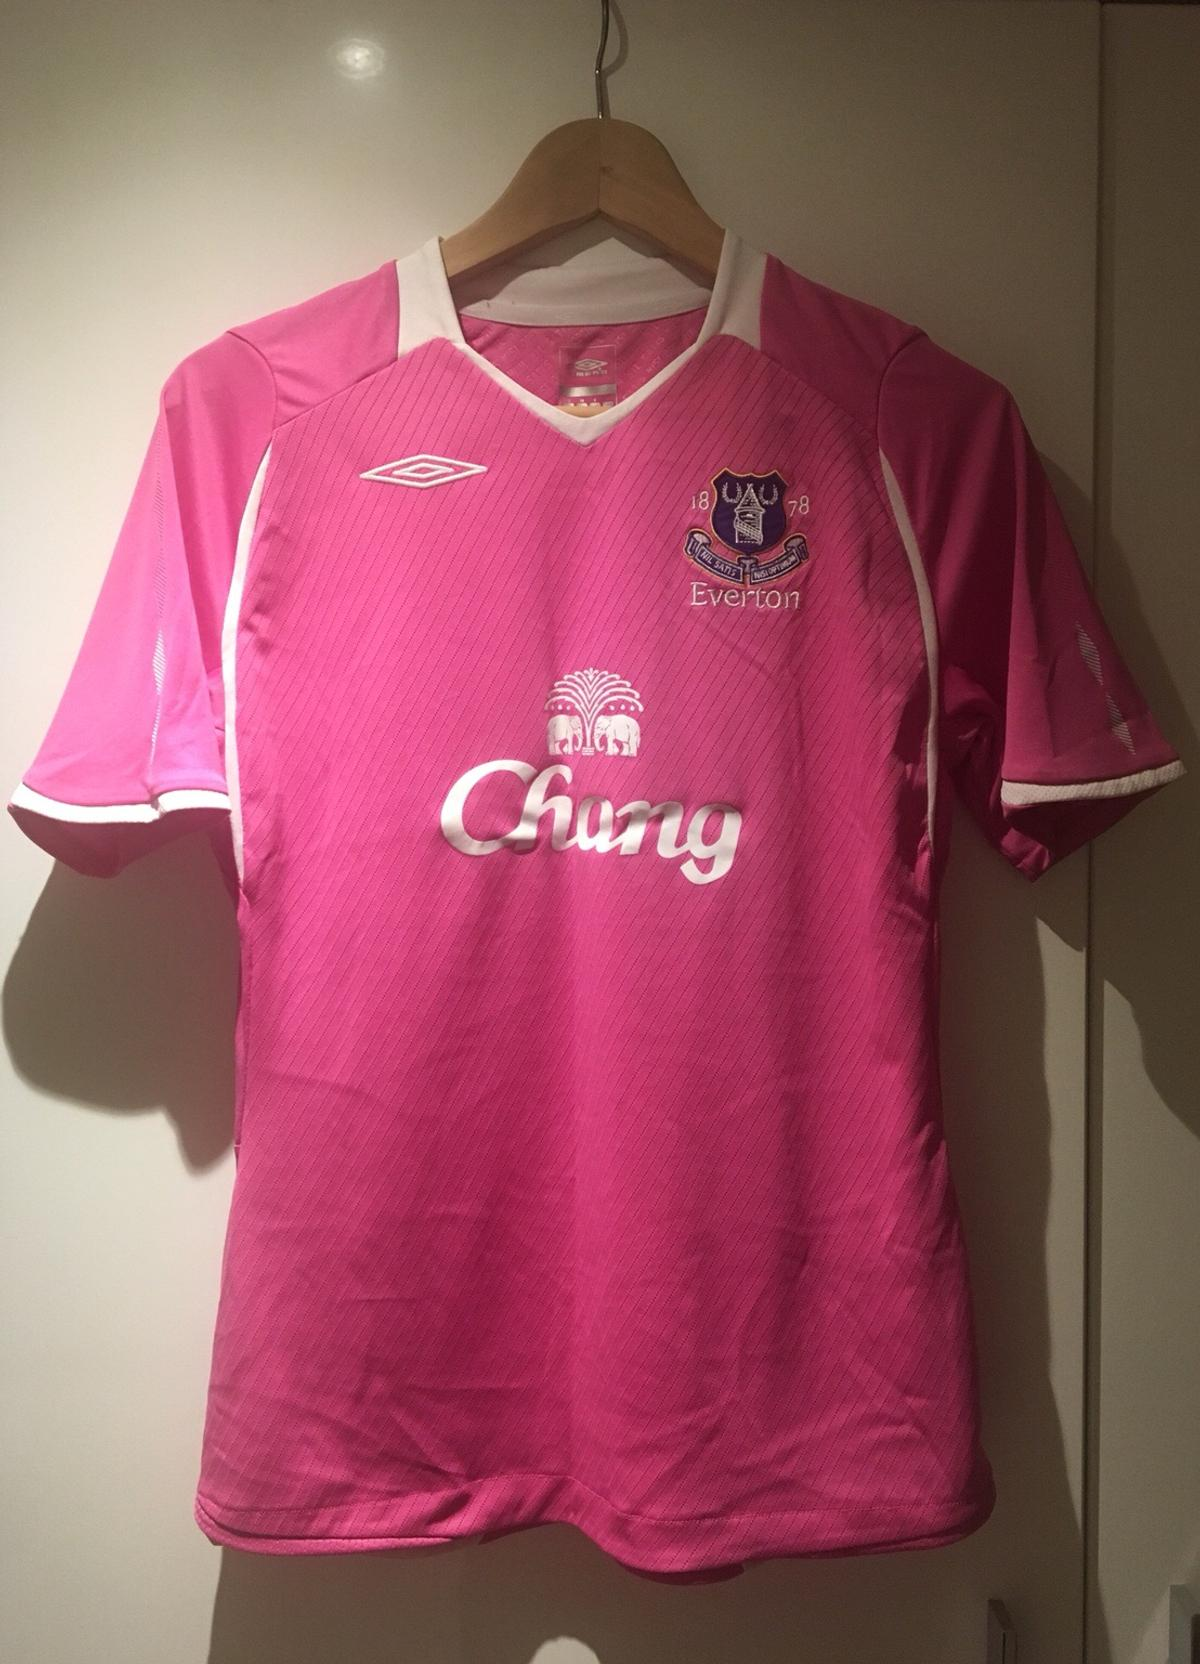 Limited Edition Everton Shirt in Tarporley for £30 00 for